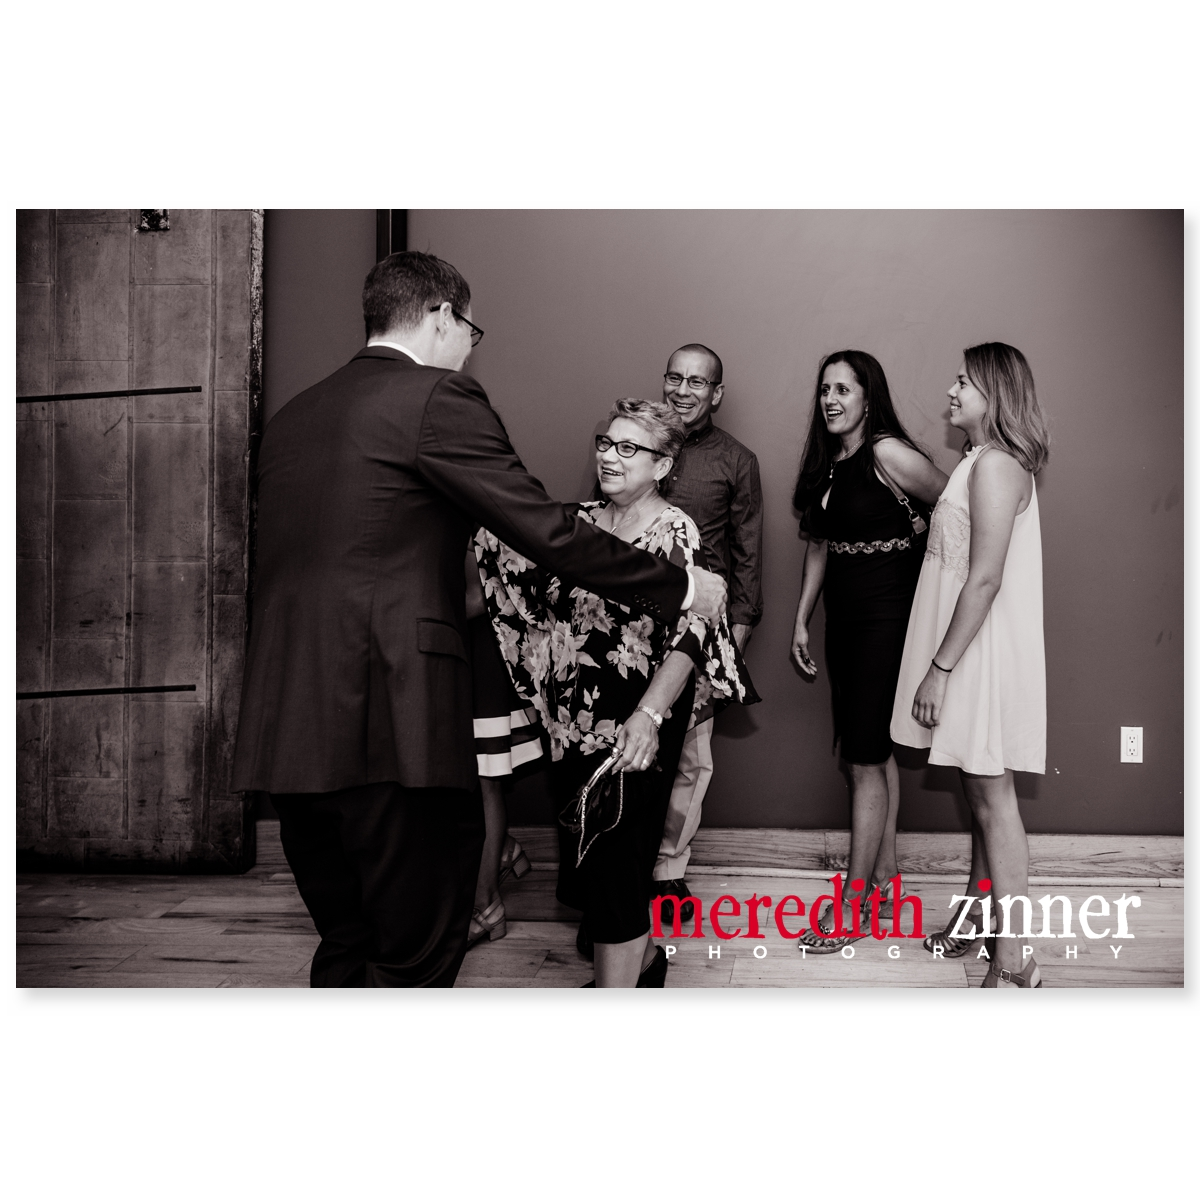 Meredith_Zinner_Photography_StilesCelebration_0142